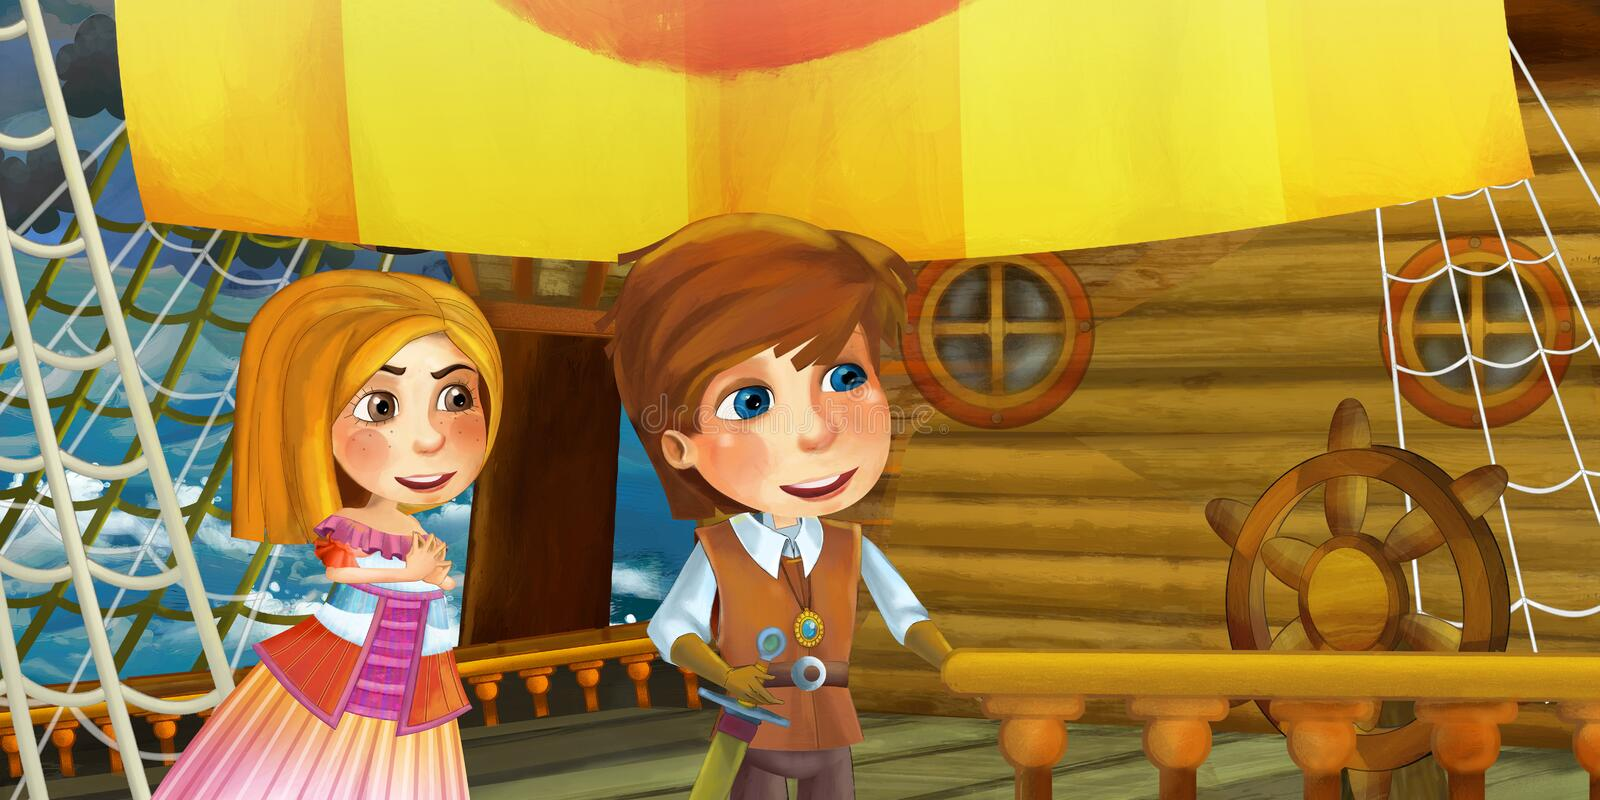 Cartoon scene on the ship - prince with his guest - lady princess - captain. Happy and funny traditional scene for different usage - for different fary tales royalty free illustration